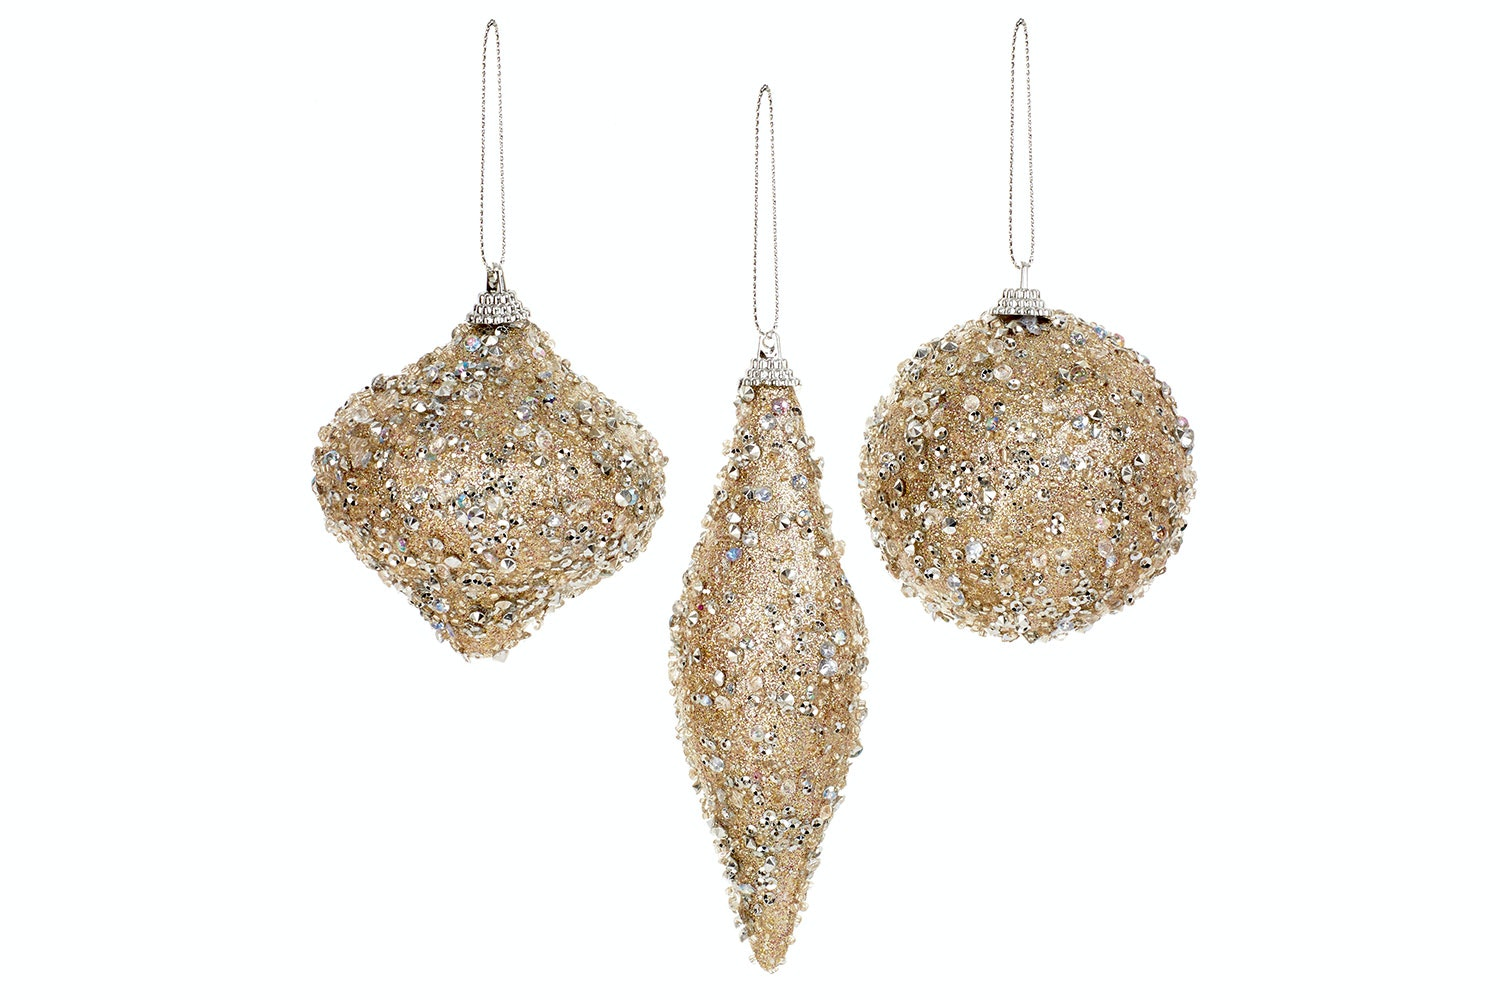 Gold Glitter Christmas Decoration